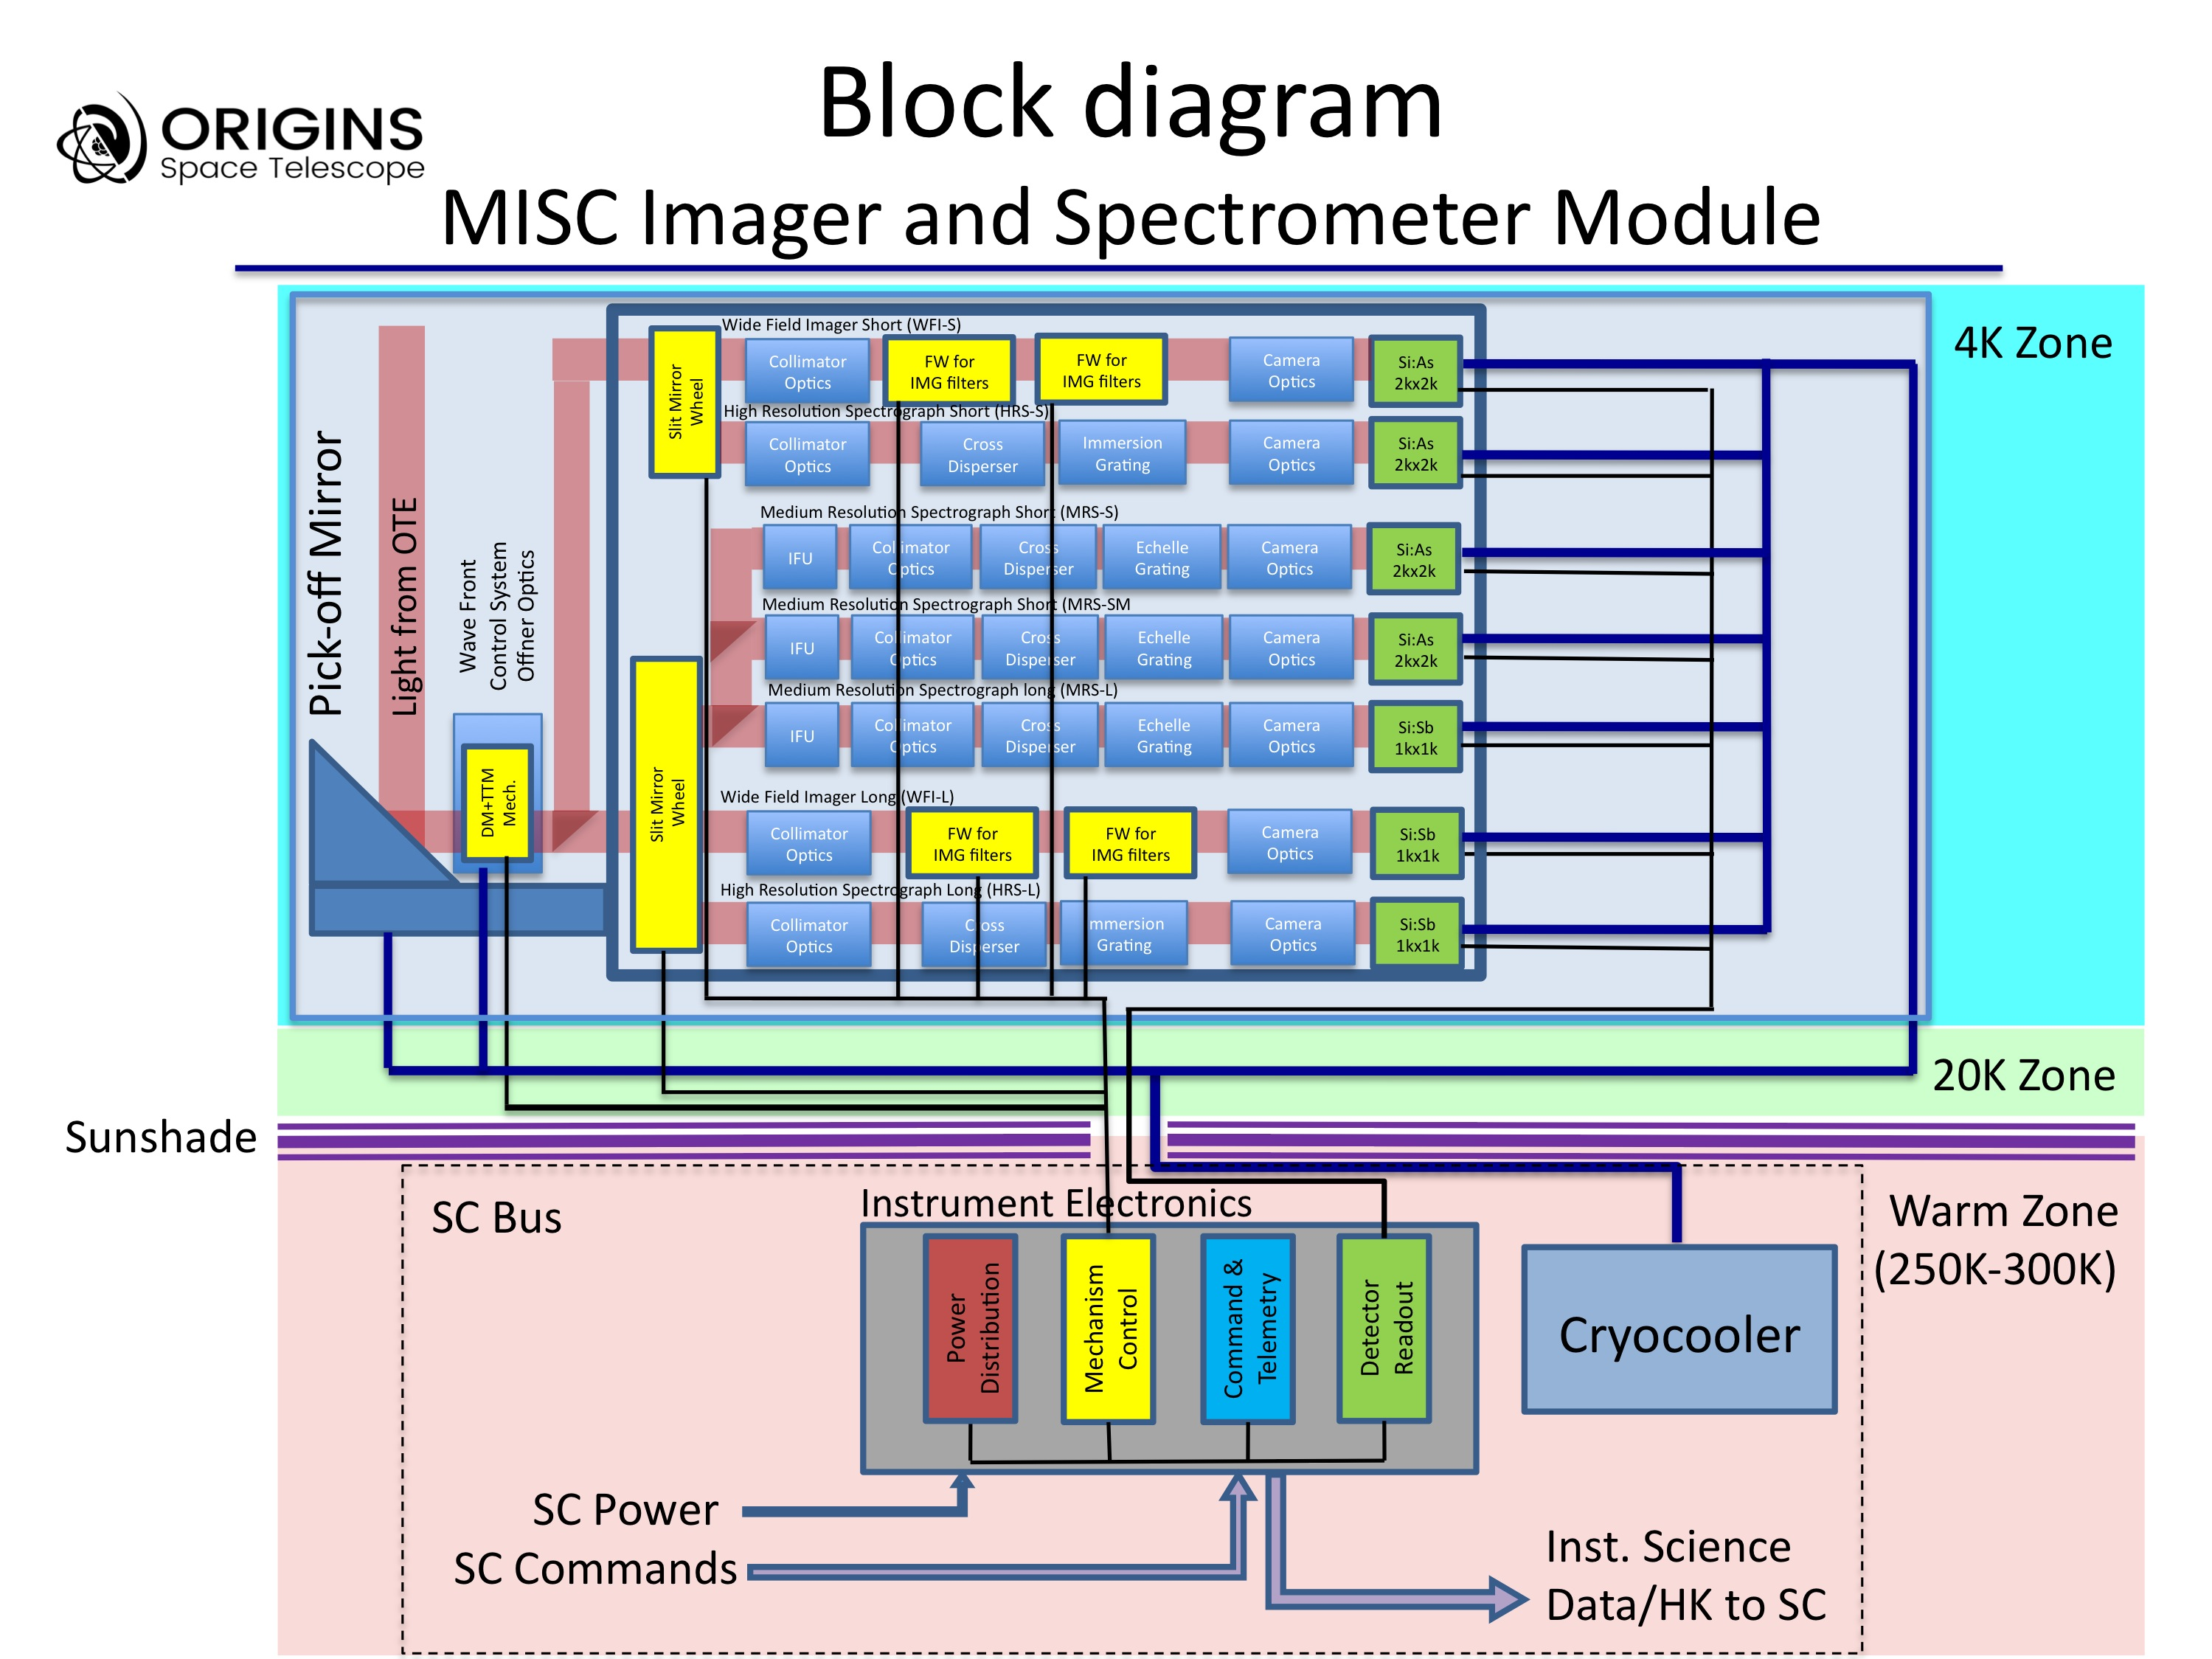 The Mid Infrared Imager Spectrometer Coronagraph Misc For Origins Galaxy Note 3 Block Diagram